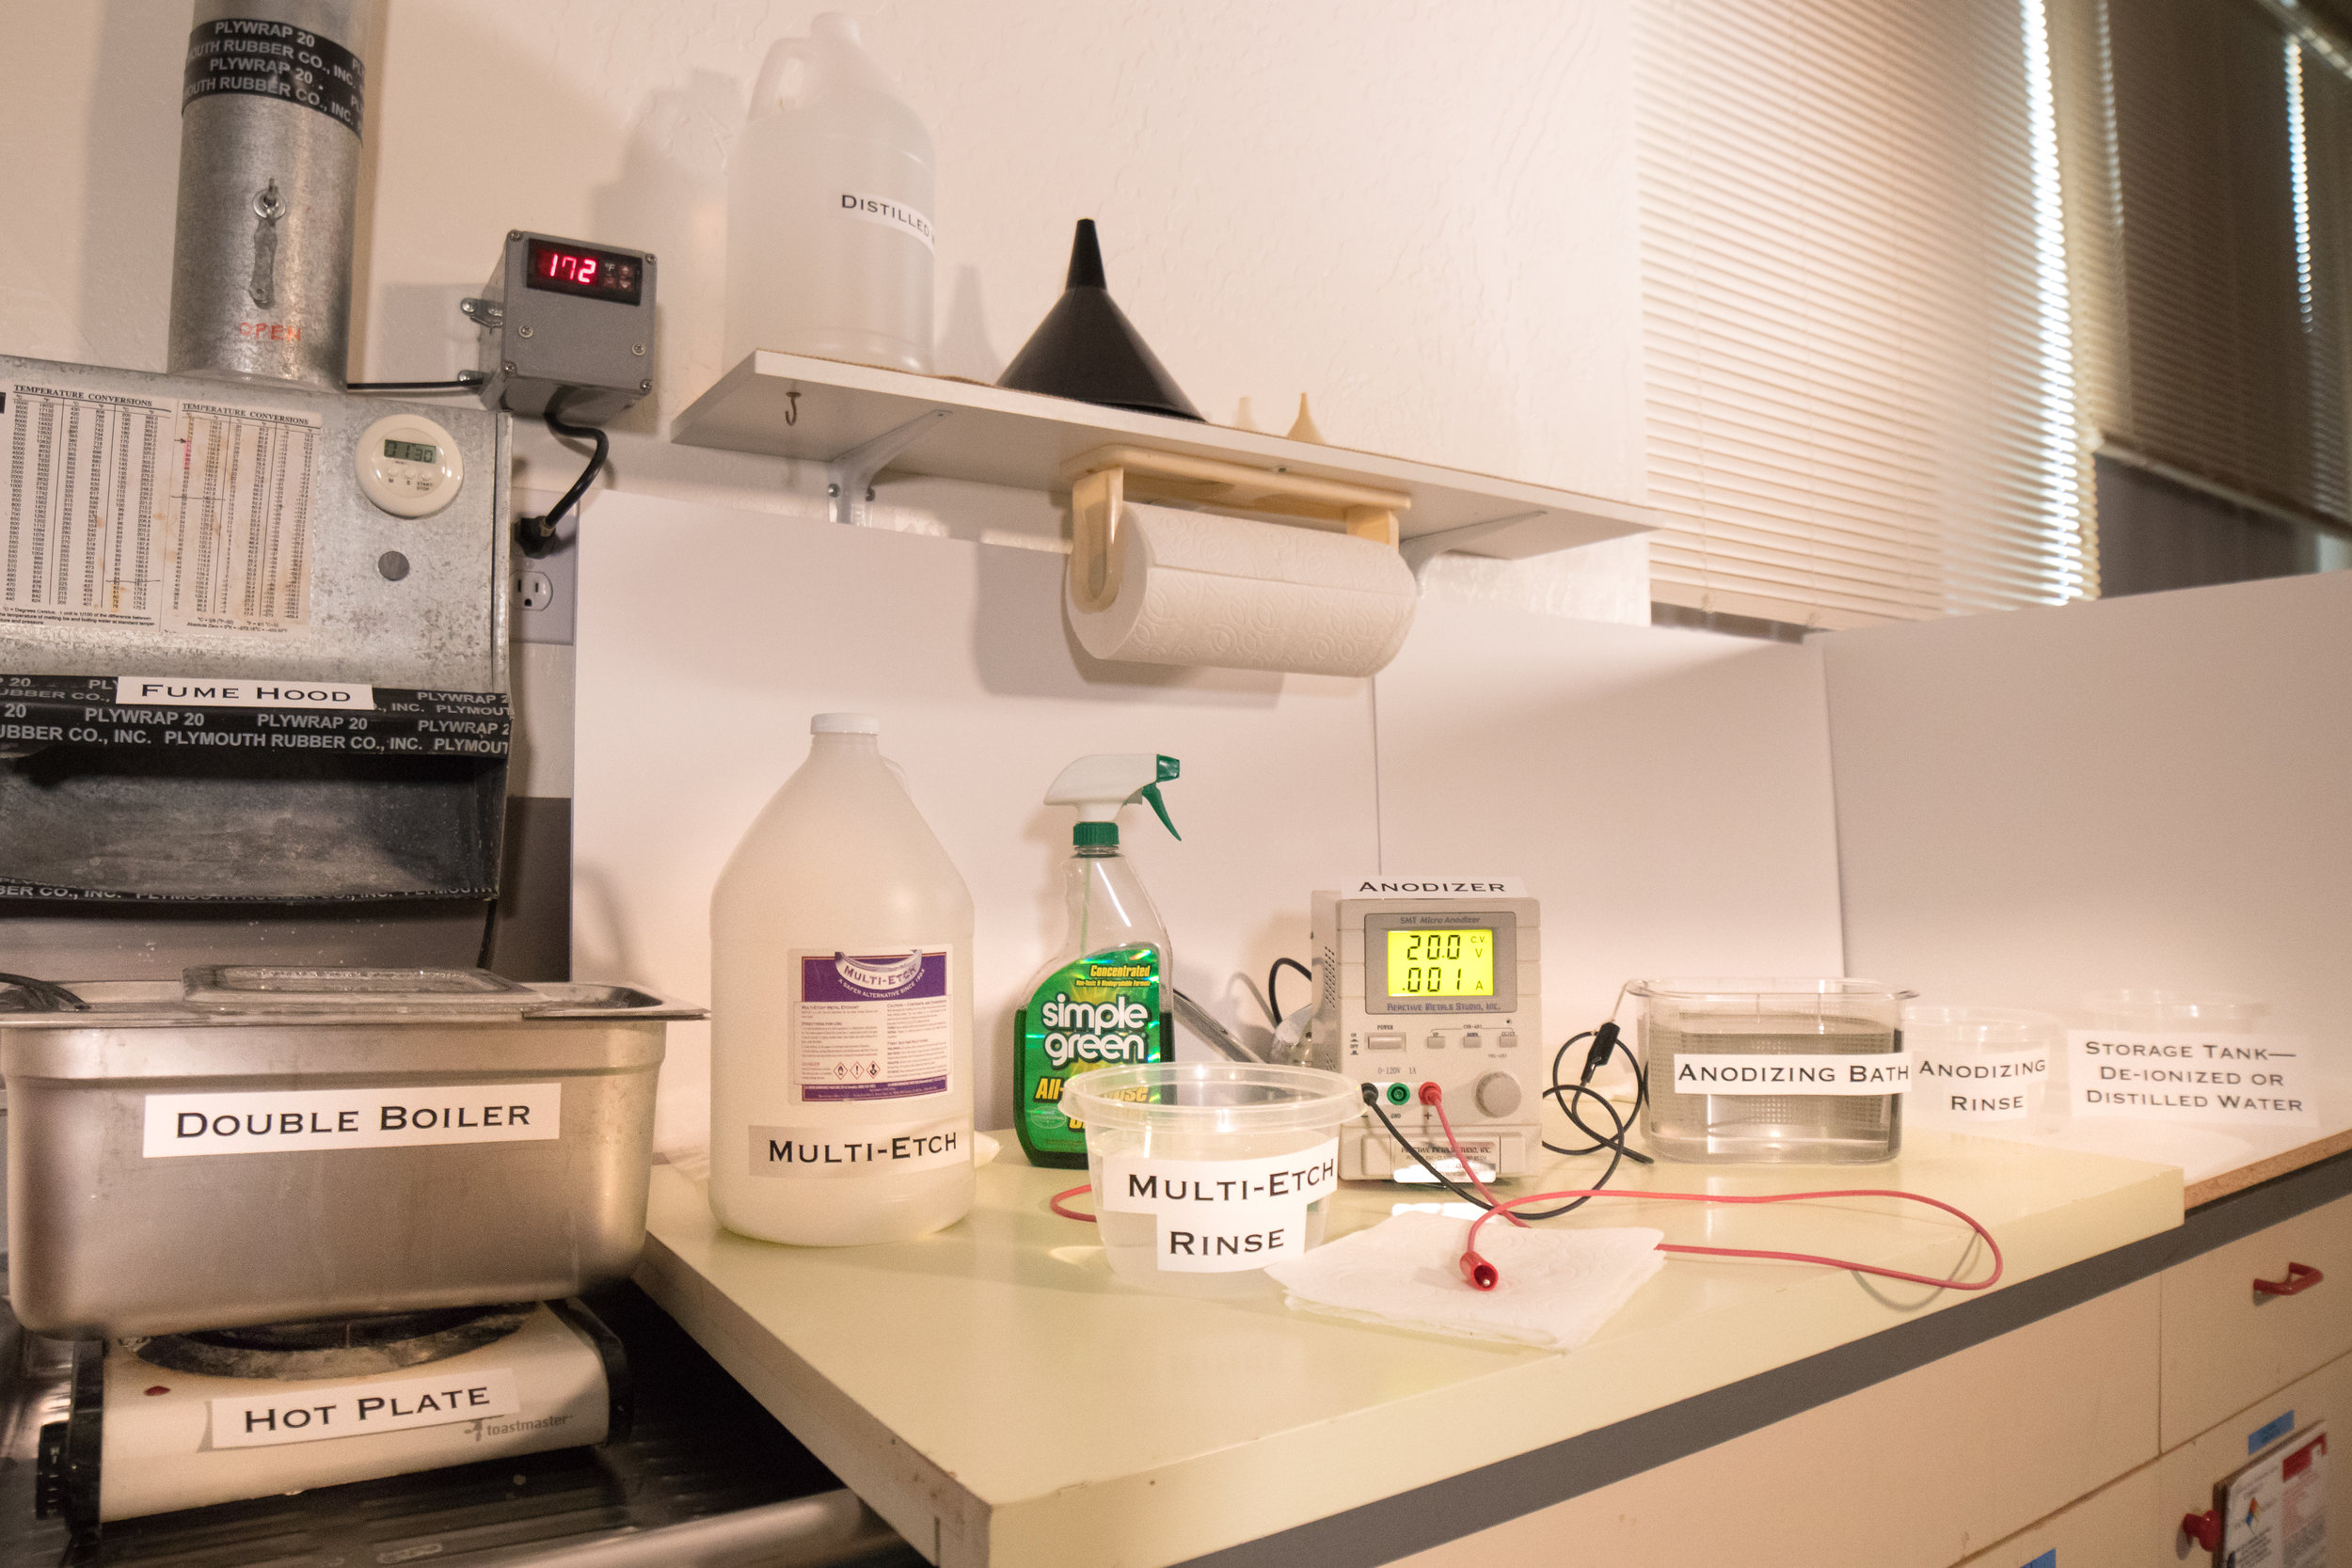 Small laboratory set-up featuring a fume hood above a double boiler. Table next to the double boiler has suggested set-up for anodizing and using multi-etch.